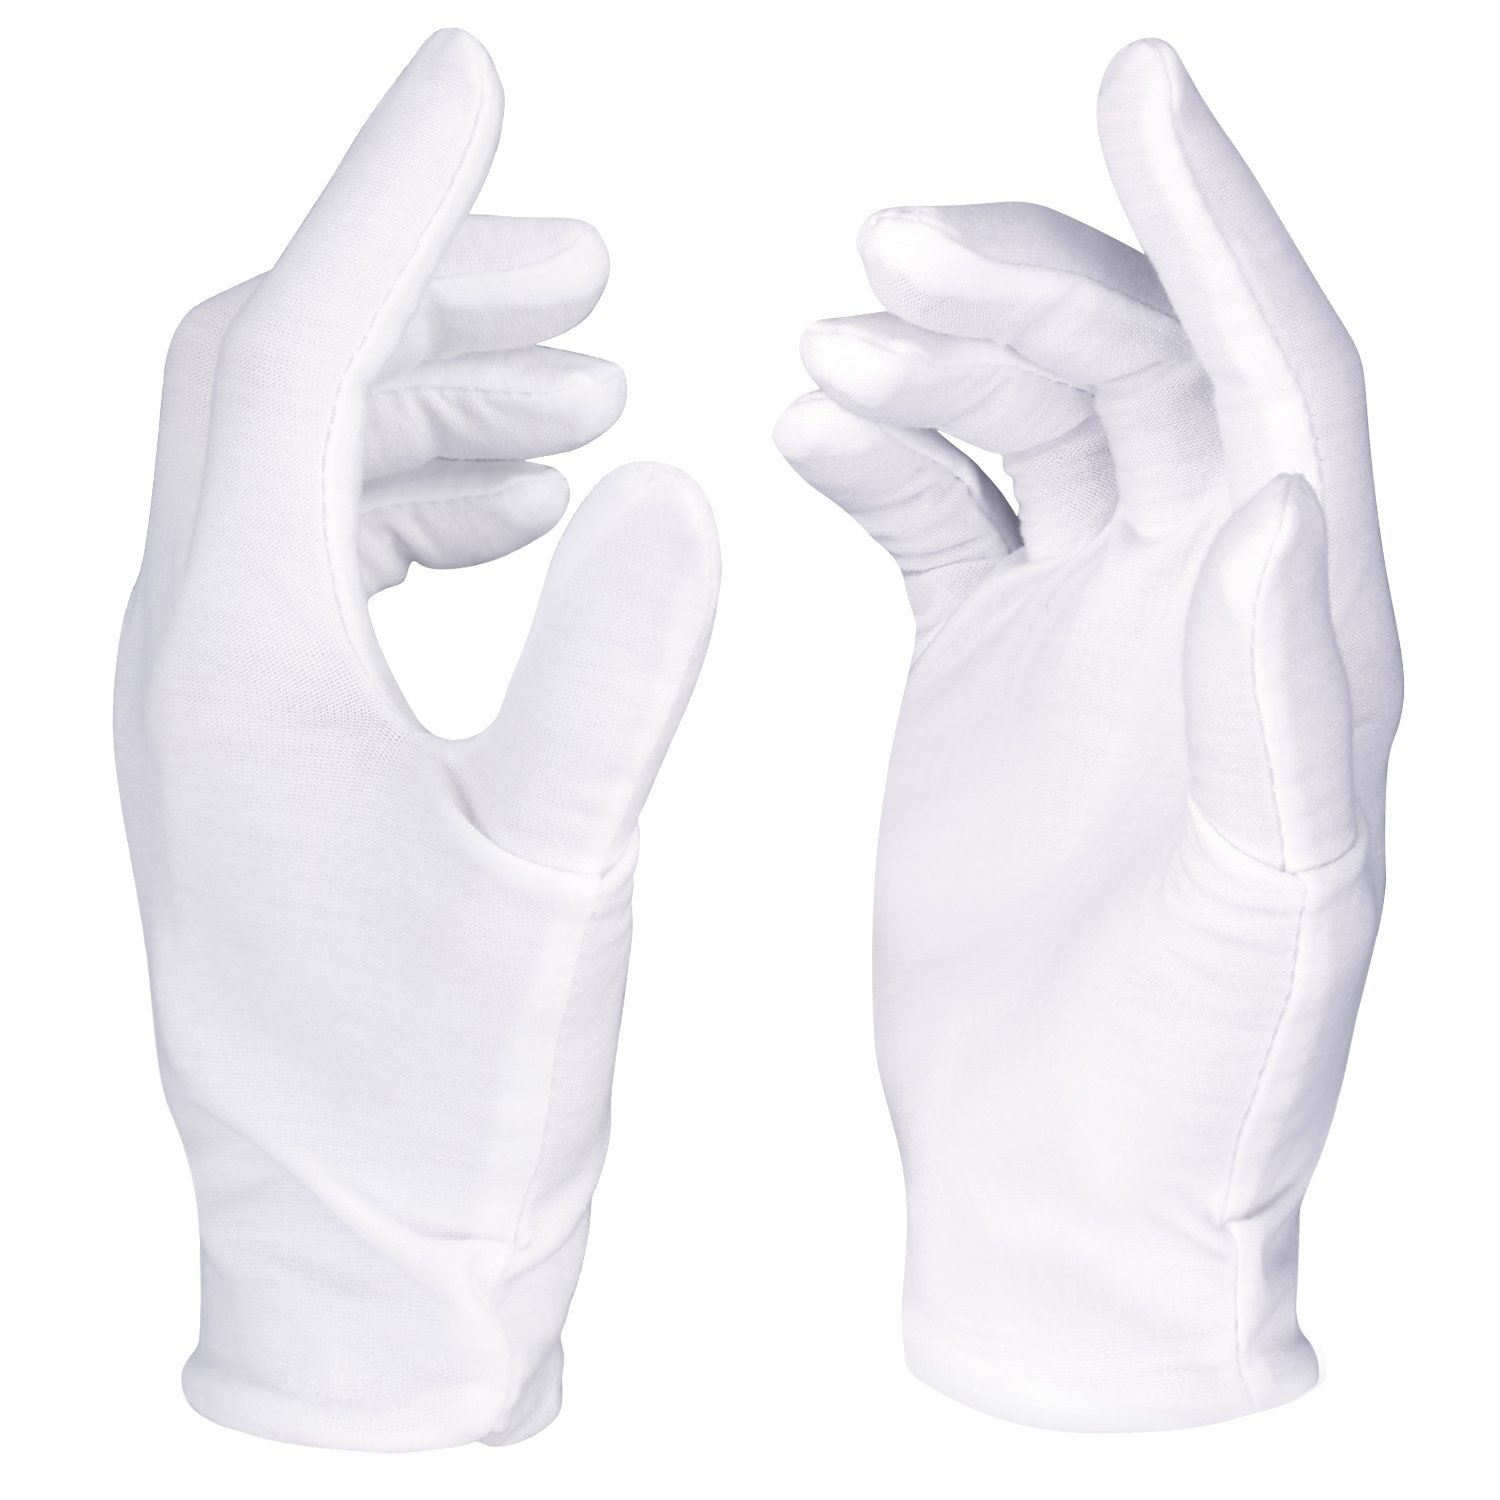 Neewer 12 Pairs (24 Gloves) 100% Cotton Lisle White Inspection Work Gloves for Coin, Jewelry, Silver, or Photo Inspection by Neewer